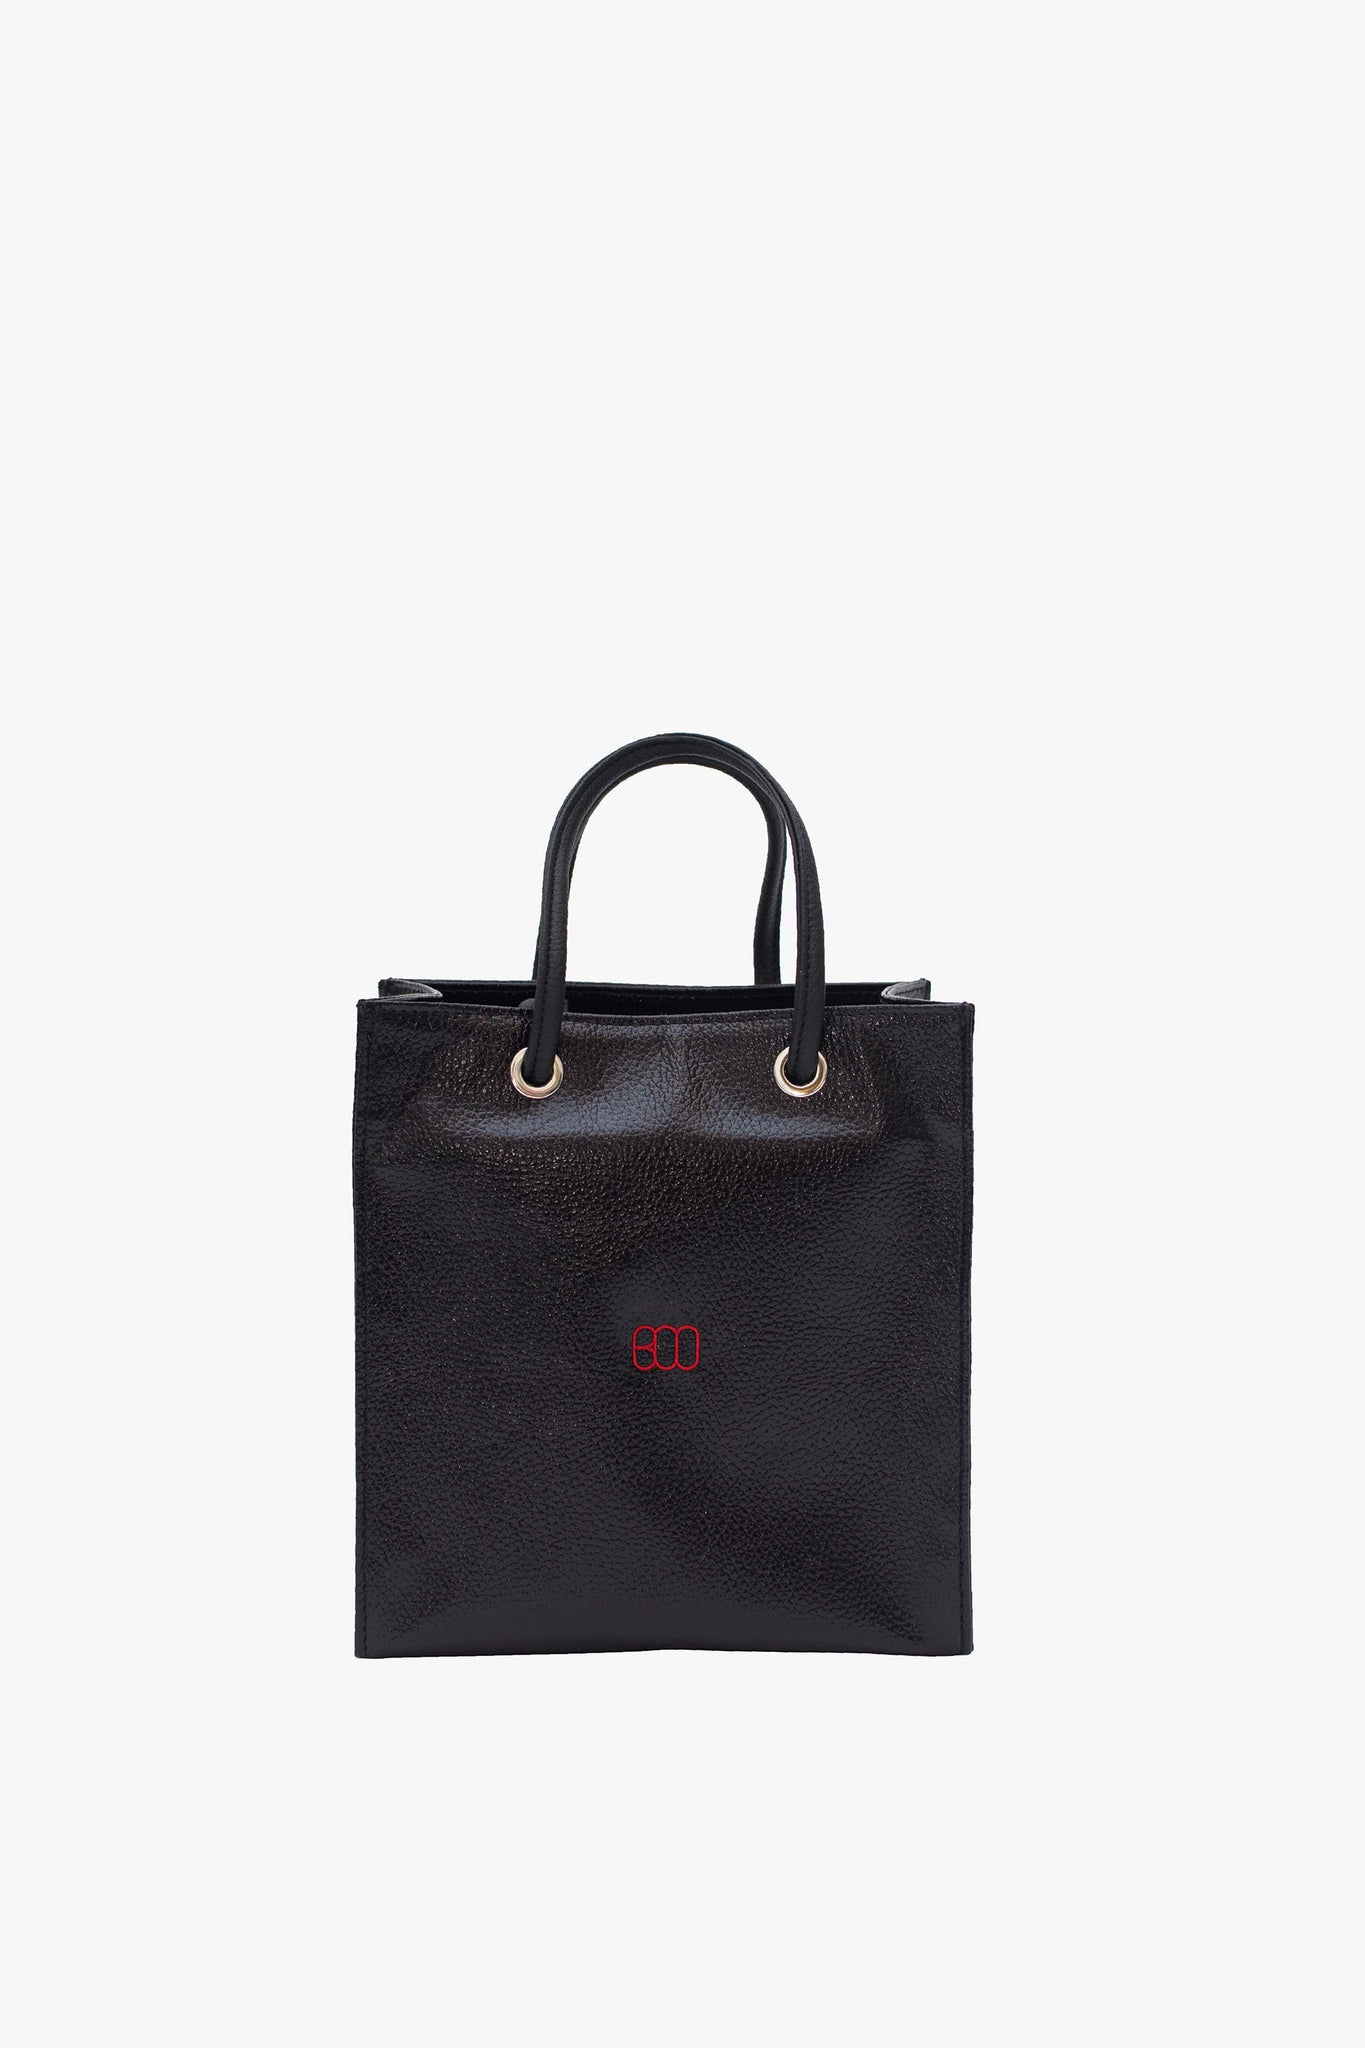 MINI SHOPPING TOTE BAG WITH RED LOGO